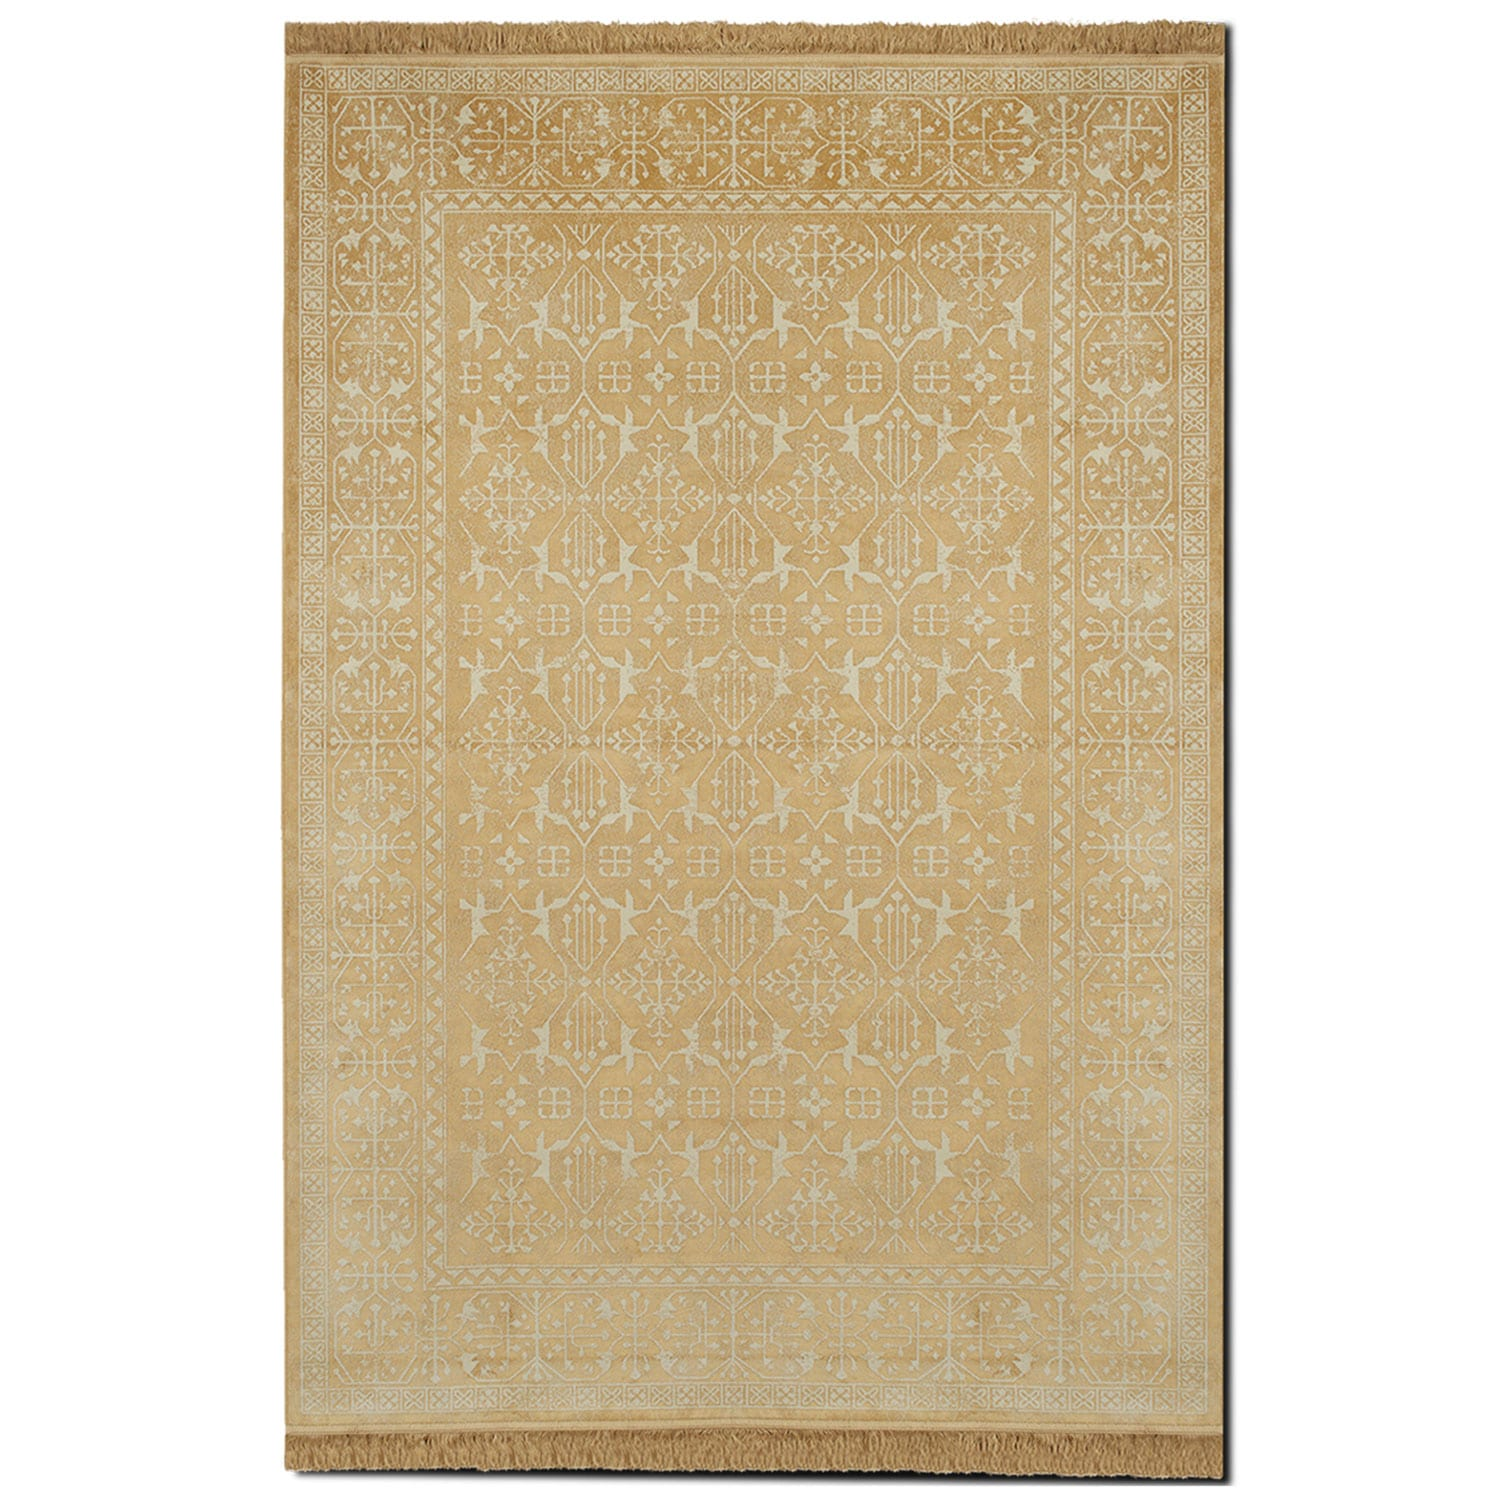 Sonoma 5' x 8' Area Rug - Yellow and White